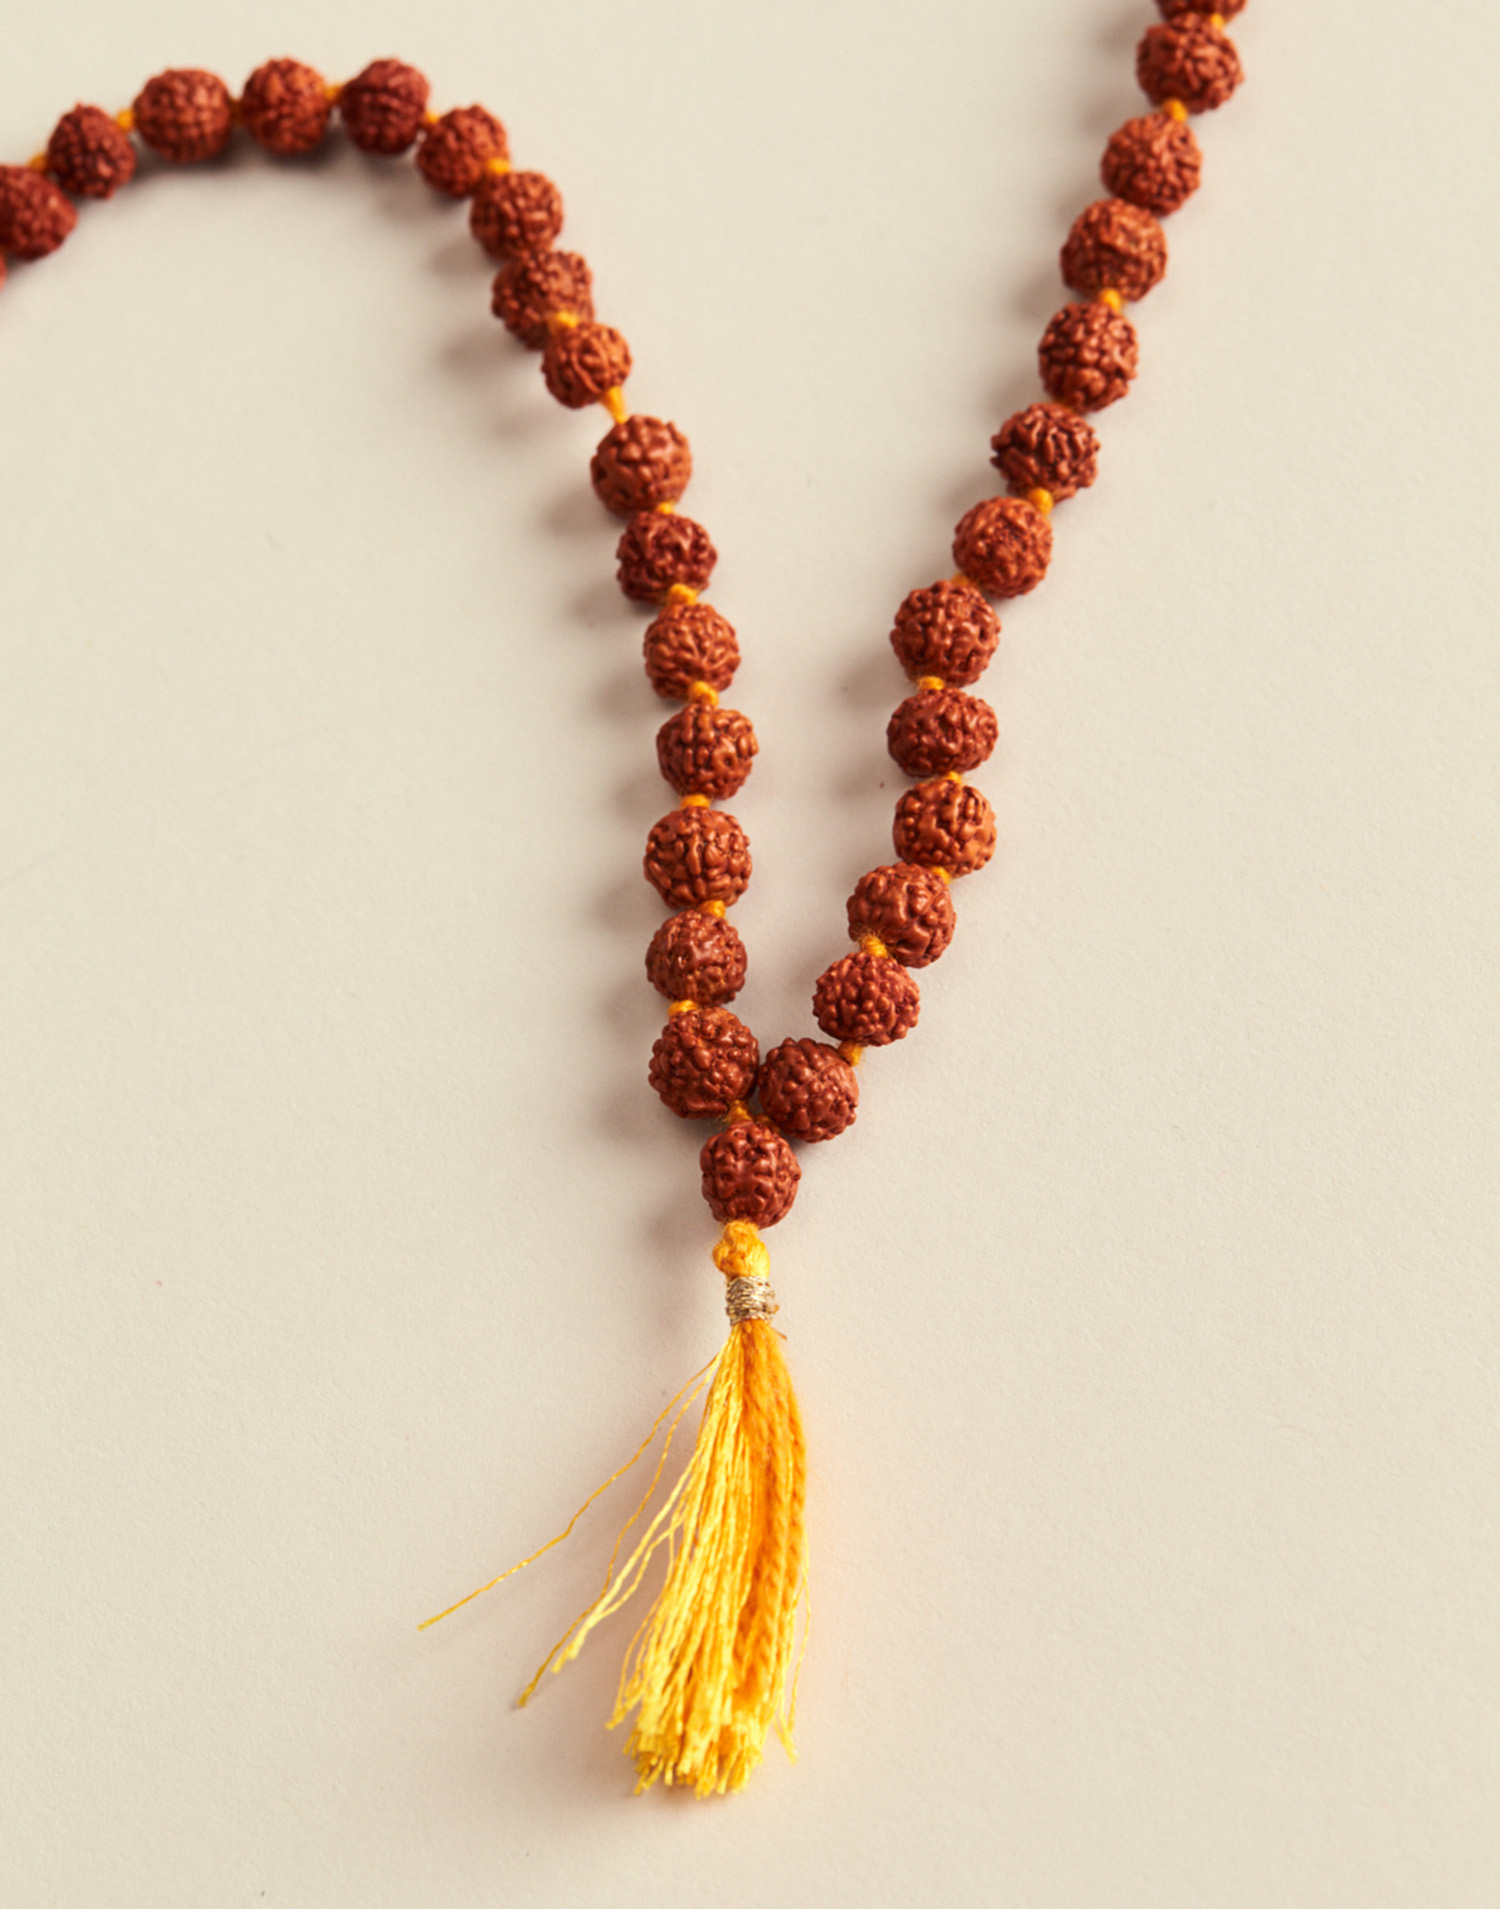 Mala rudraksha necklace